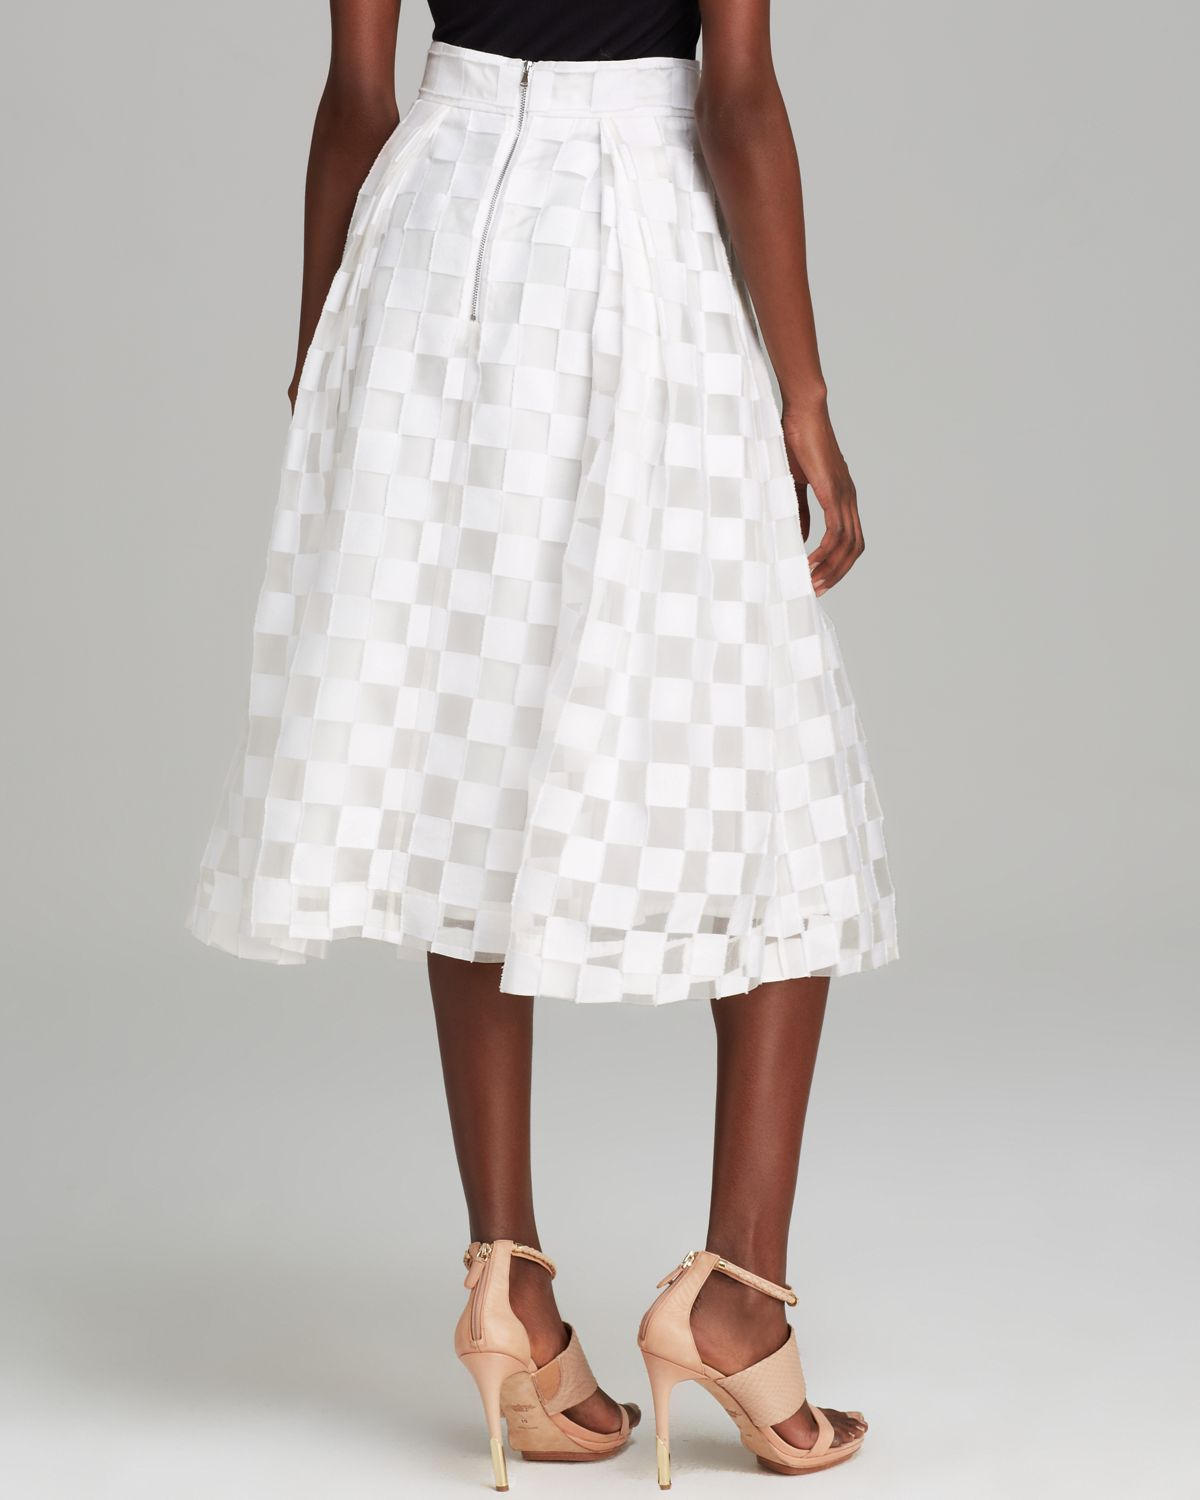 Milly Skirt Full Midi Square Fil Coupe in White | Lyst